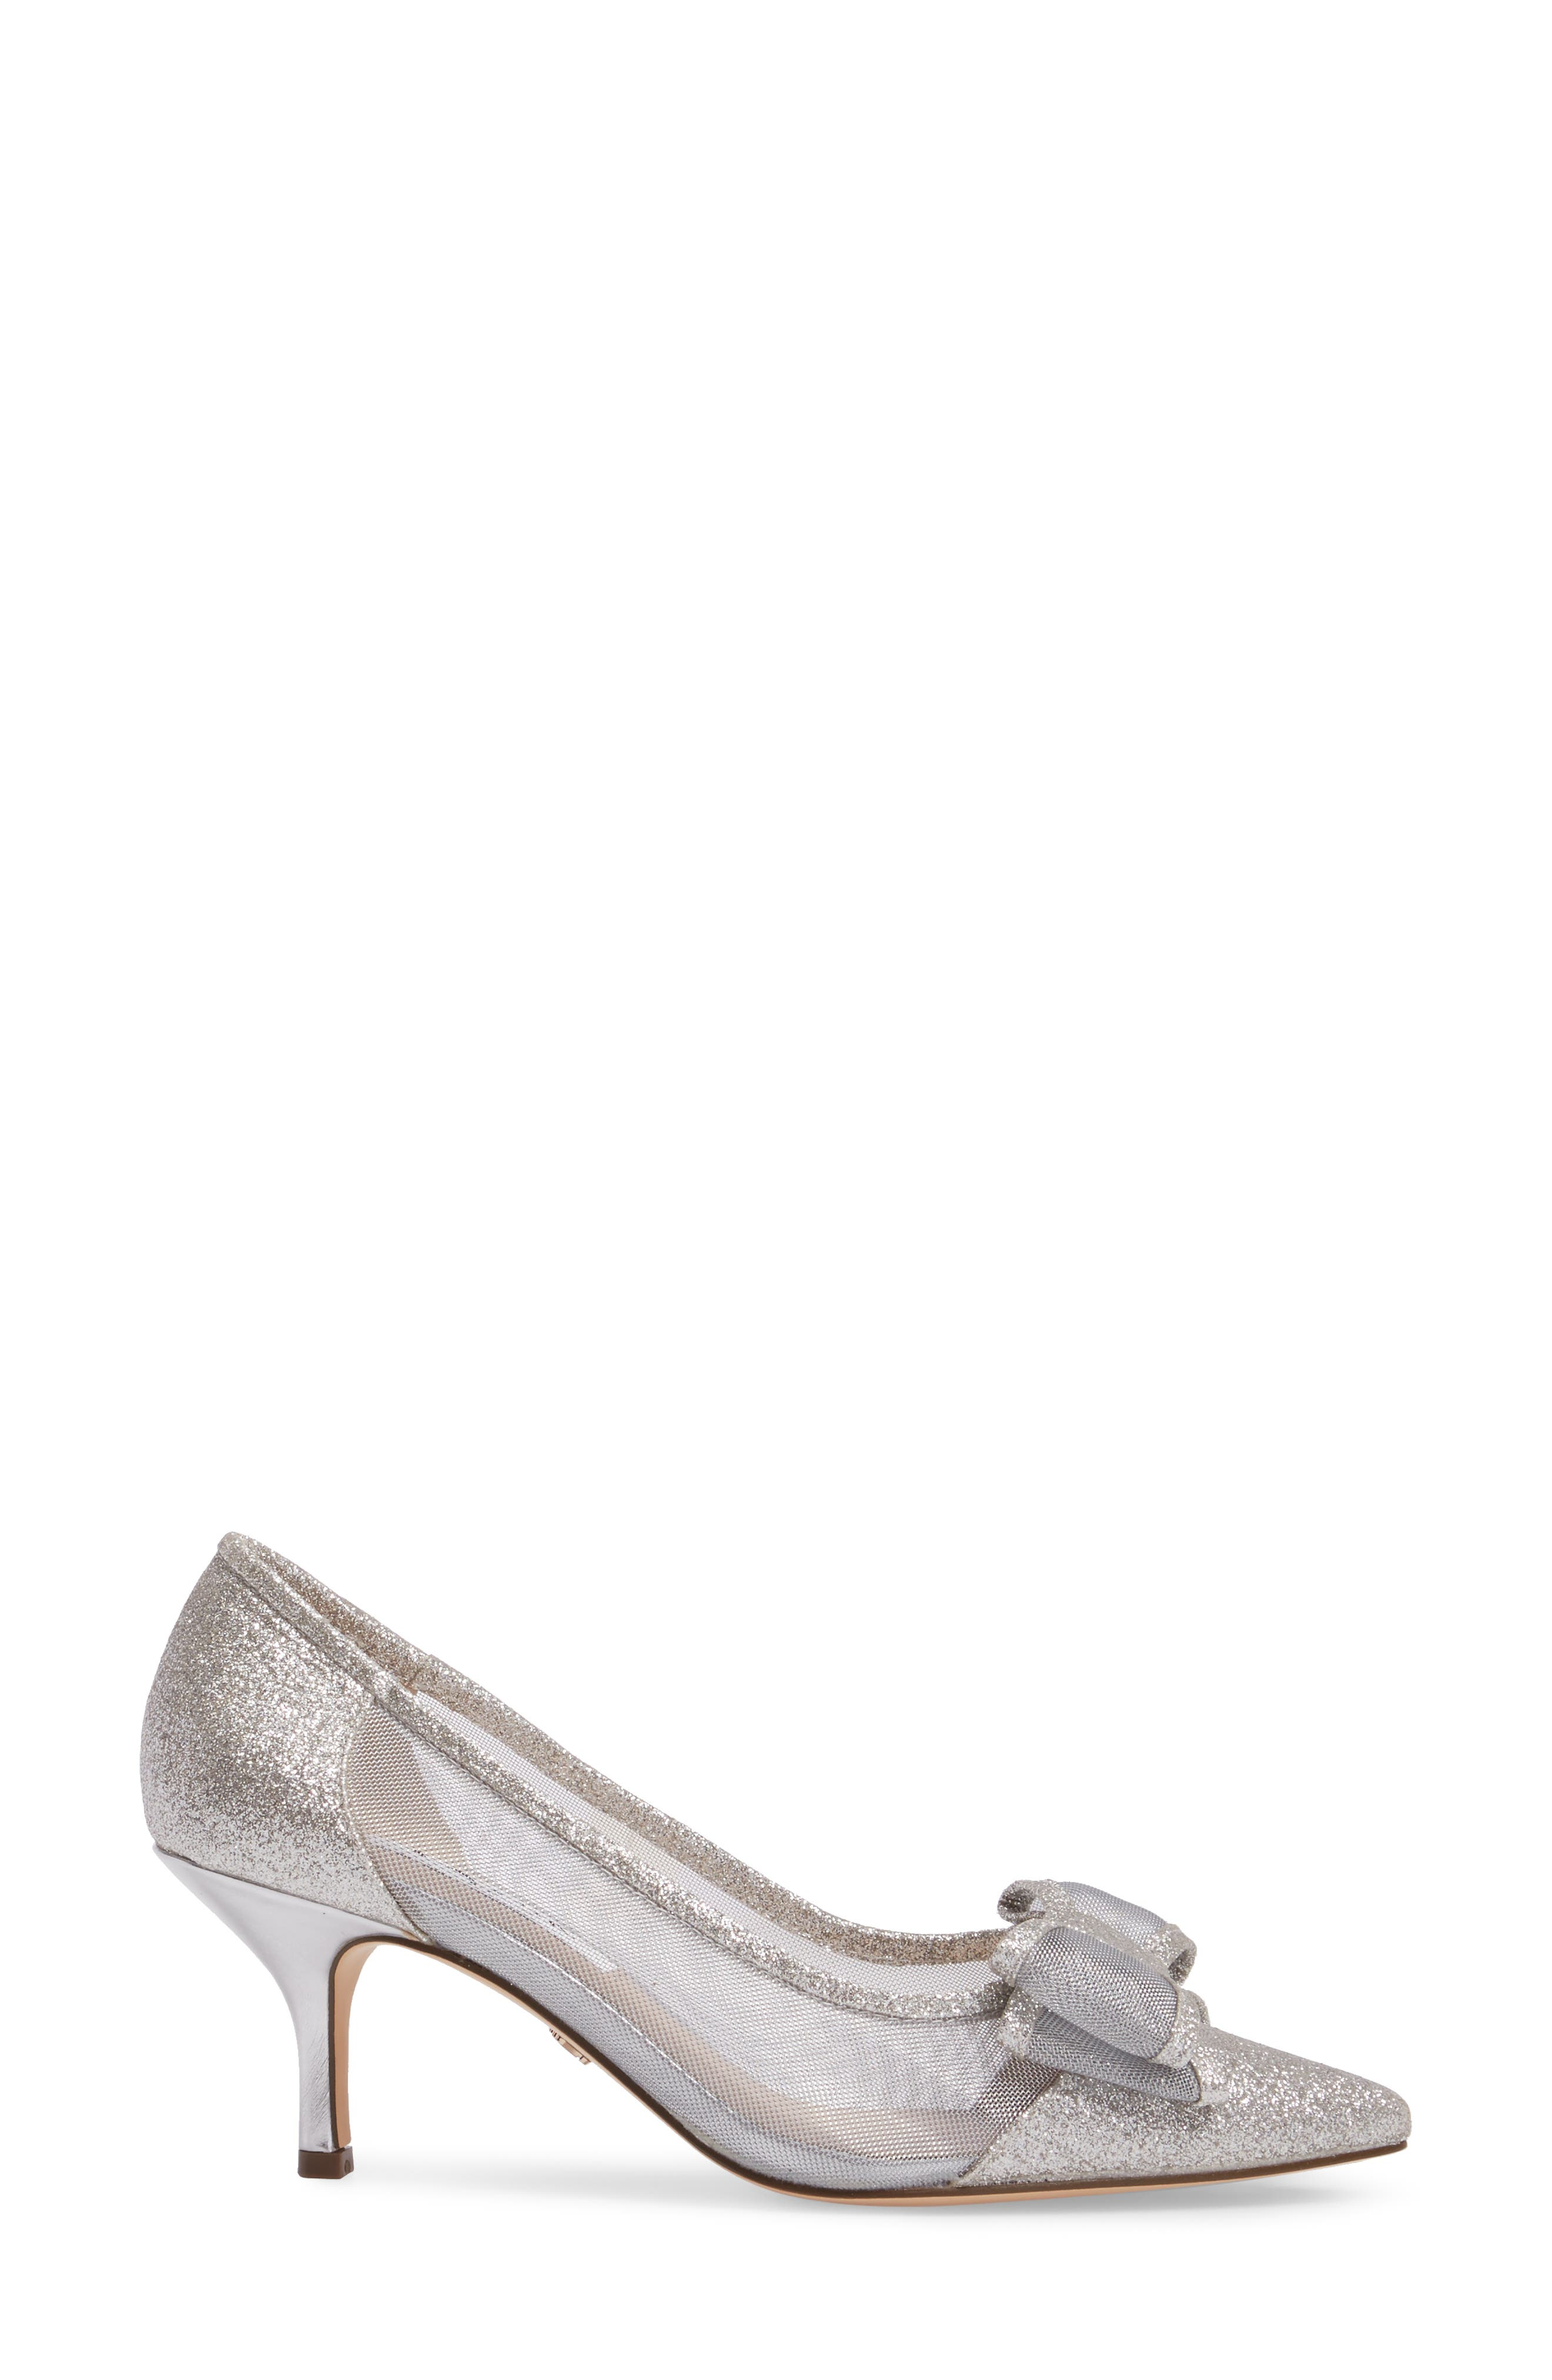 NINA, Bianca Pointy Toe Pump, Alternate thumbnail 3, color, SOFT SILVER GLITTER FABRIC